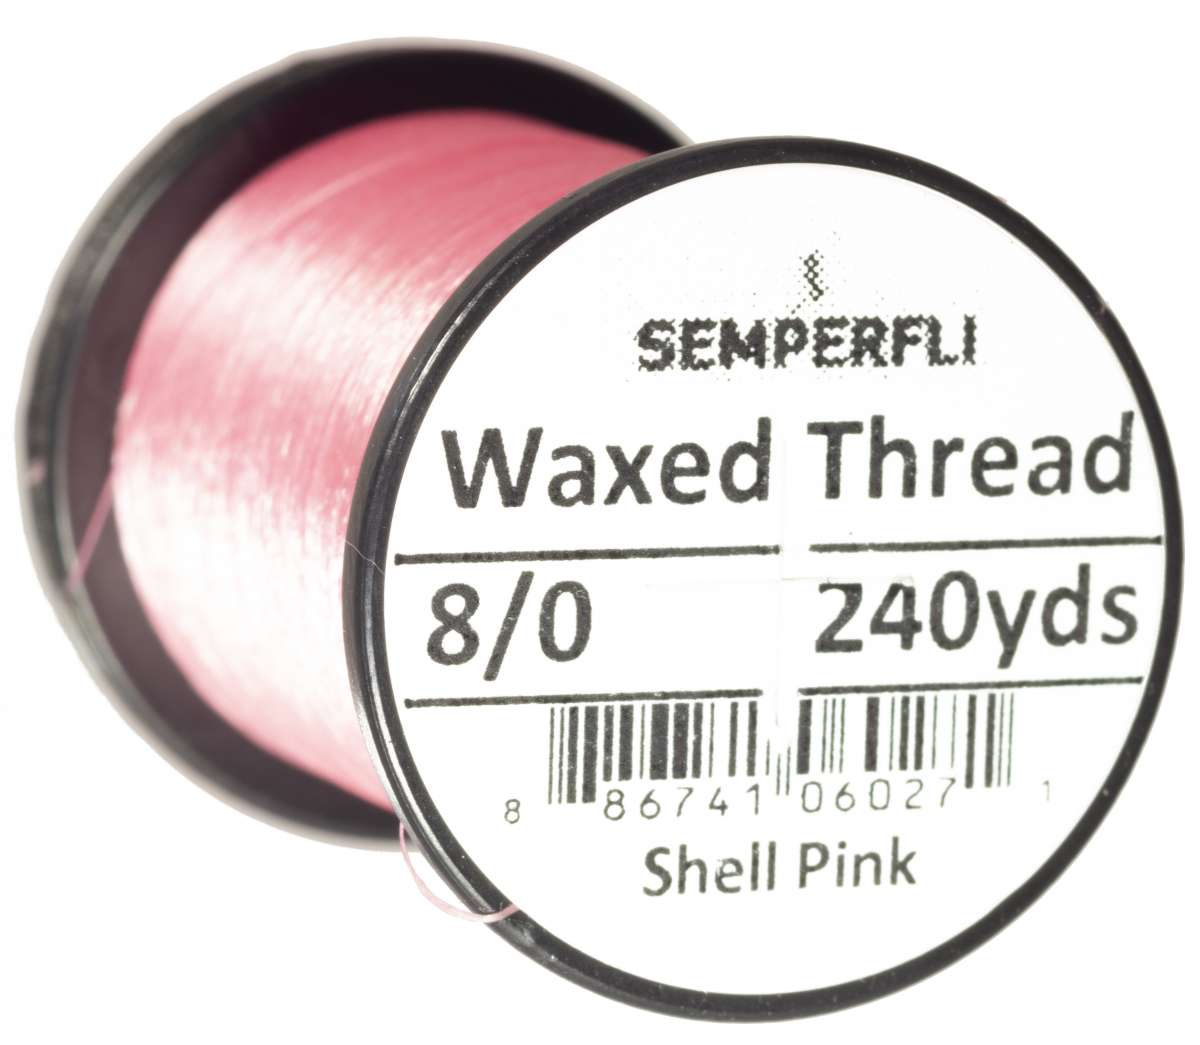 8/0 Classic Waxed Thread Shell Pink Sem-0400-1111